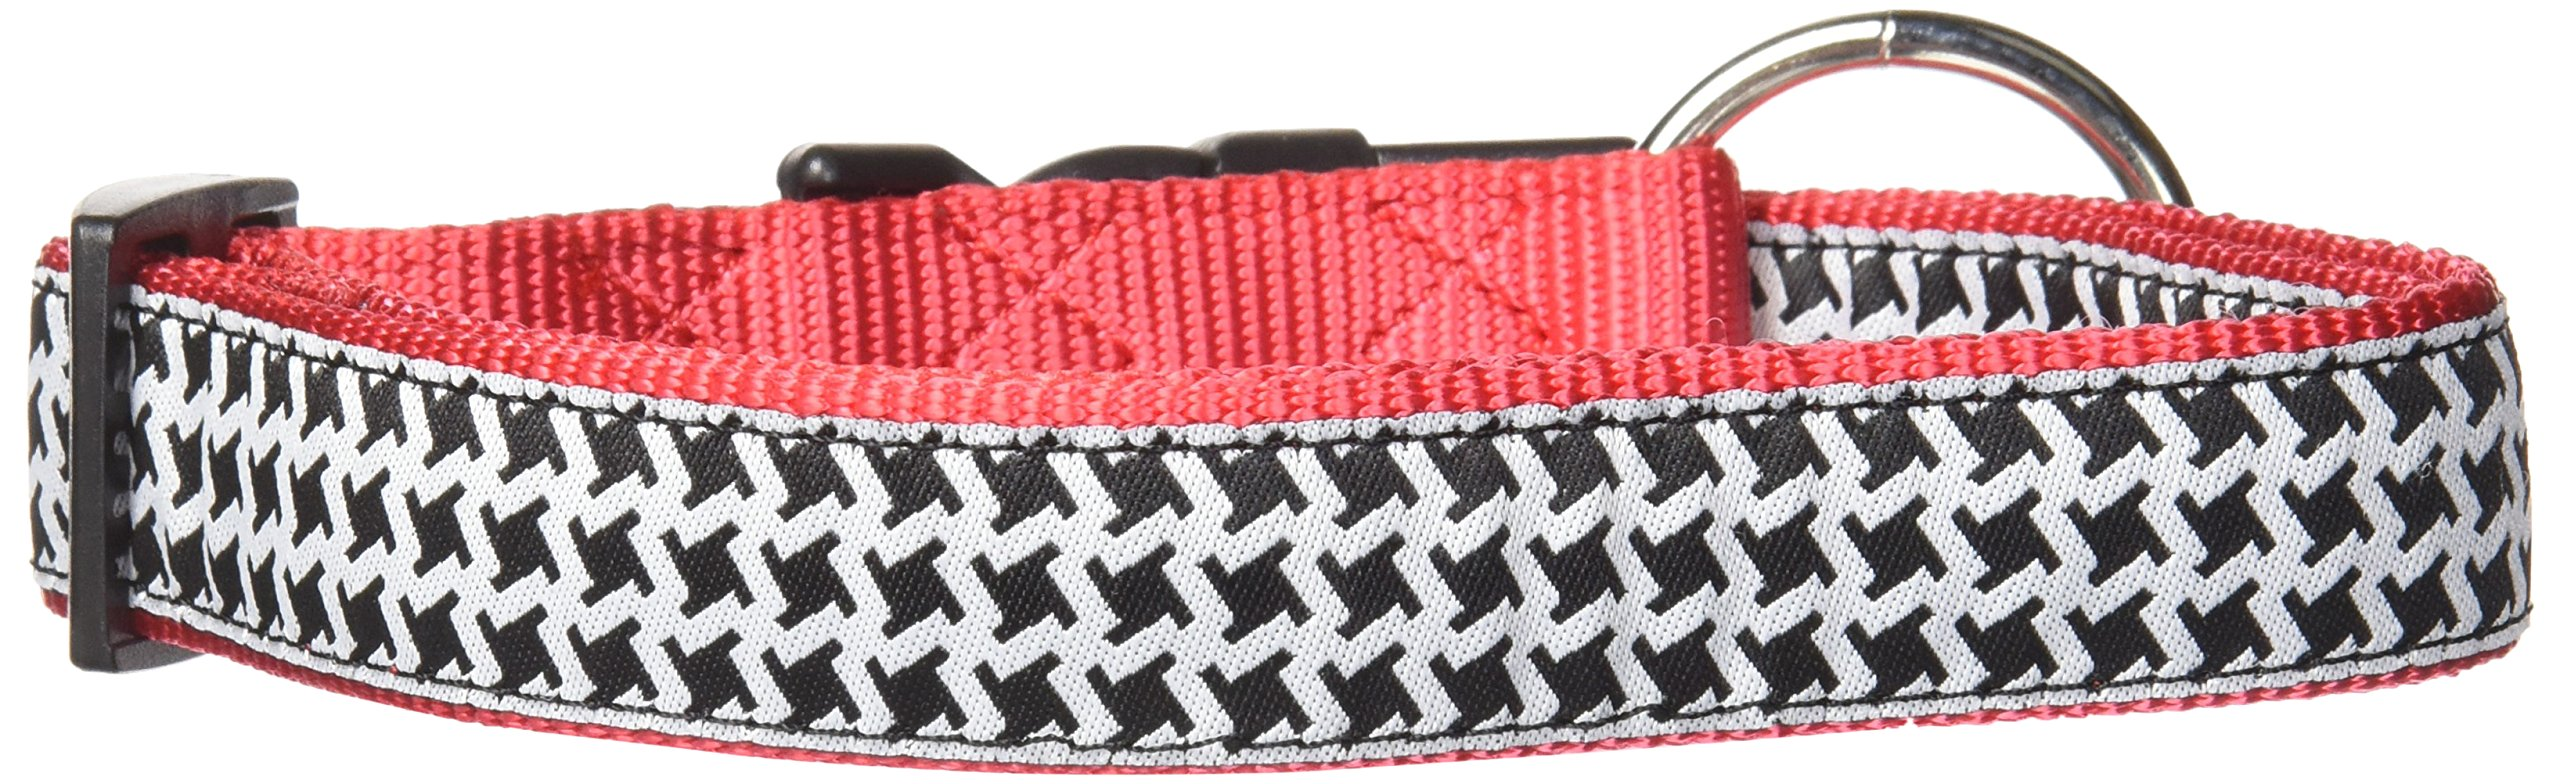 Hamilton 1'' x 18-26'' Adjustable Dog Collar with Hounds Tooth Patterned Ribbon Overlay, Large